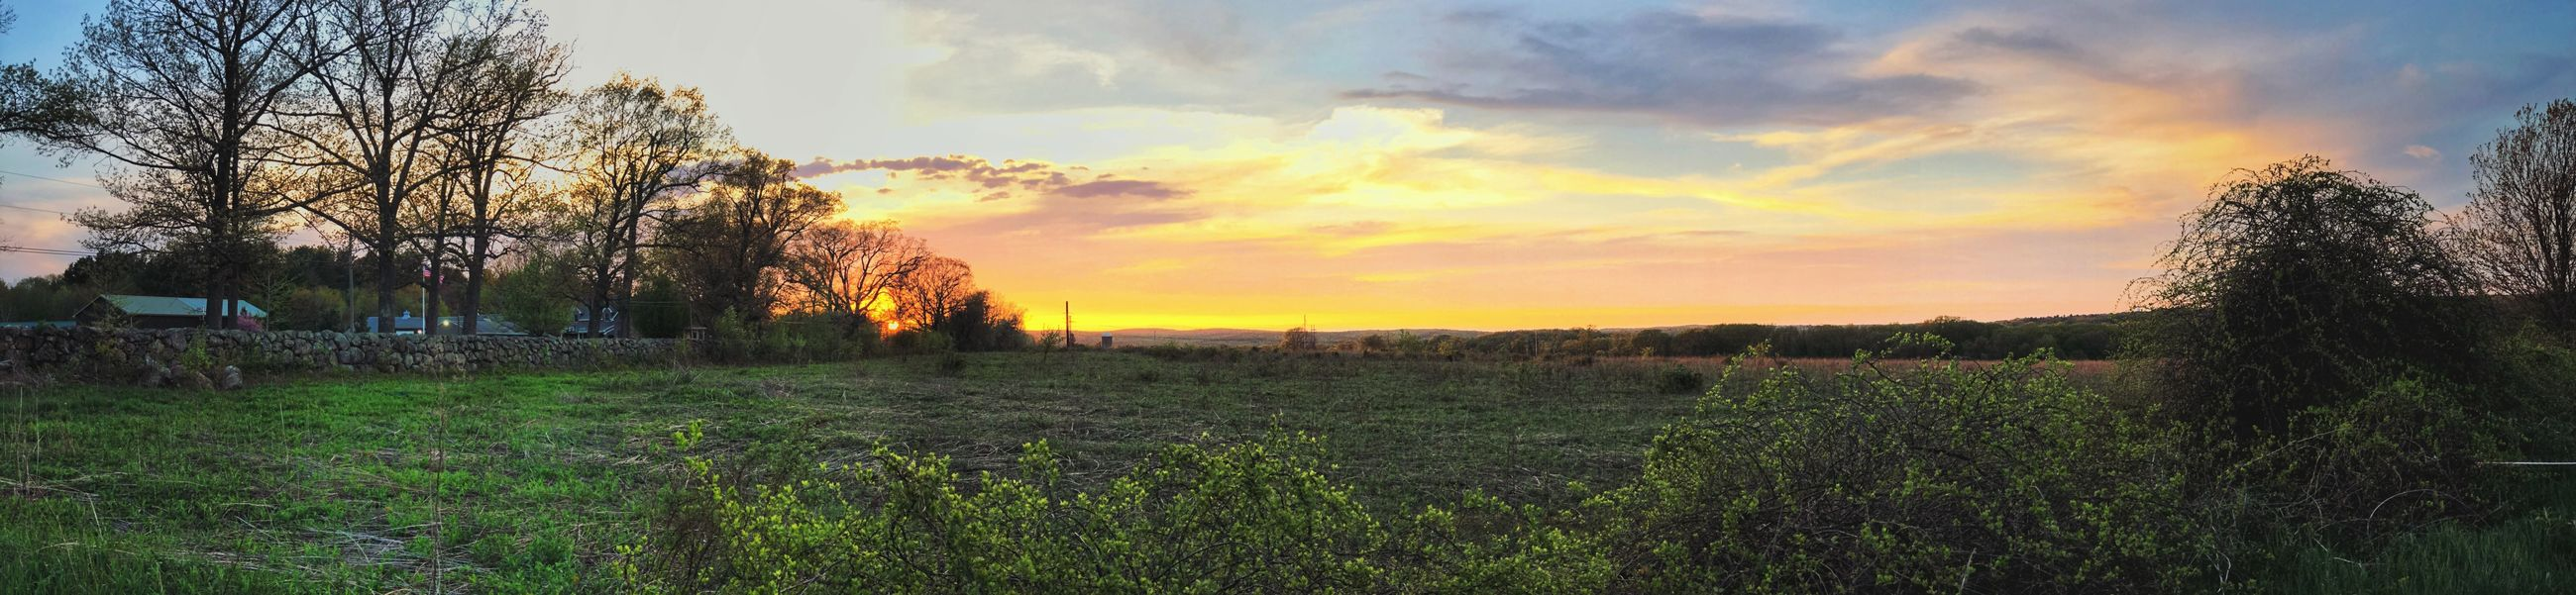 Colors of a Sunset (Panoramic View) Plant Sky Sunset Beauty In Nature Tranquil Scene Tranquility Cloud - Sky Growth Scenics - Nature Field Land Environment Landscape Tree Grass Orange Color No People Nature